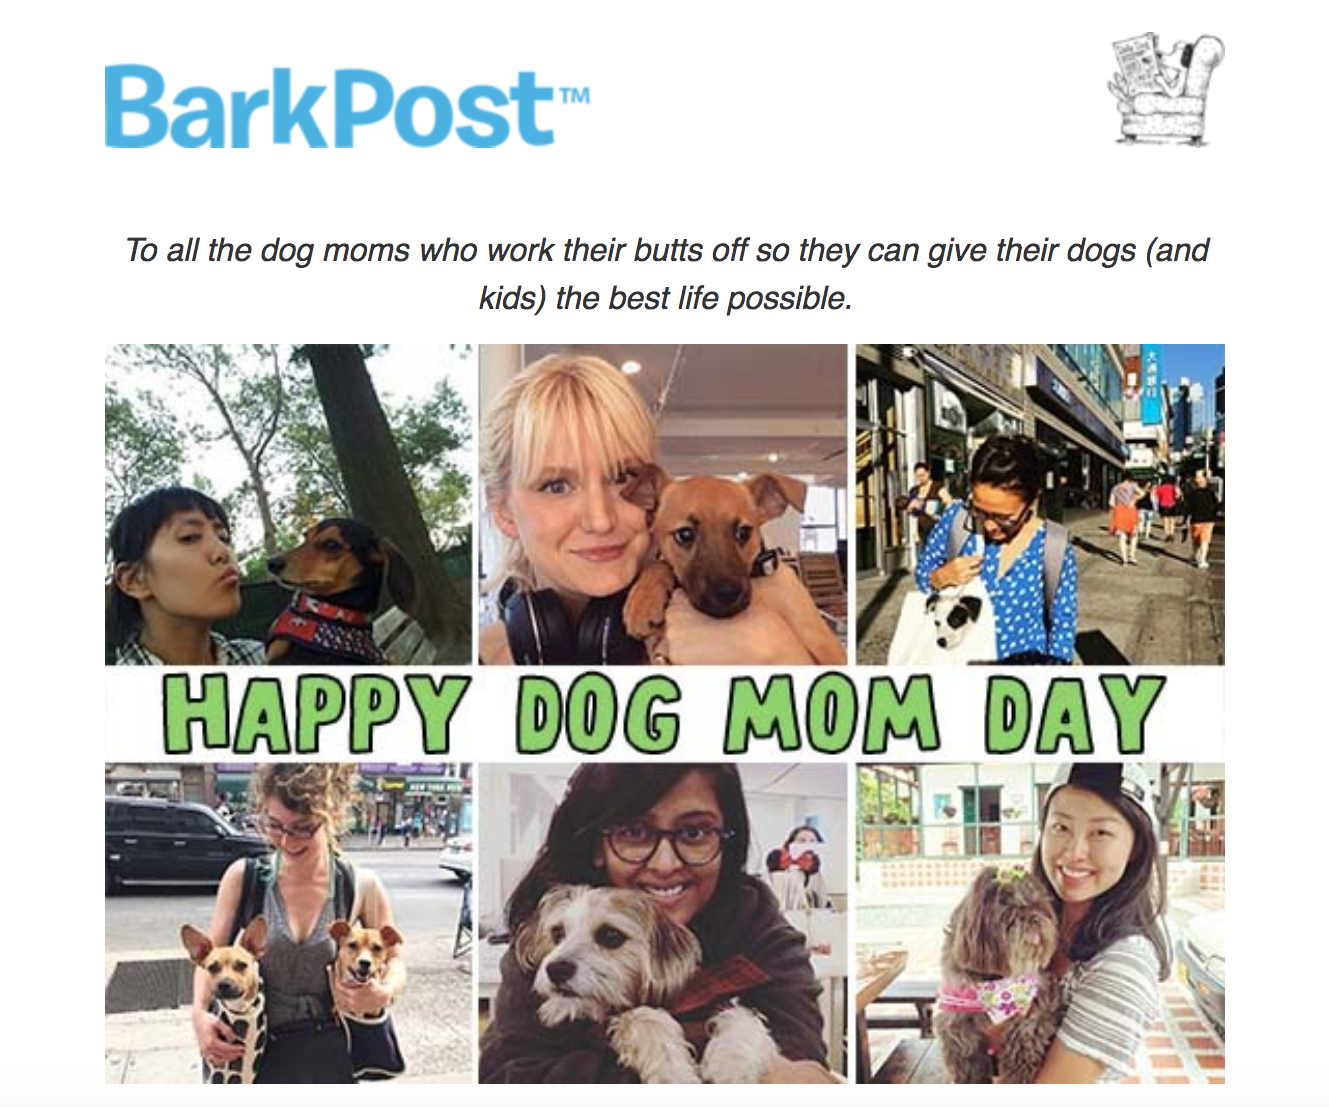 Barkpost dog mom day